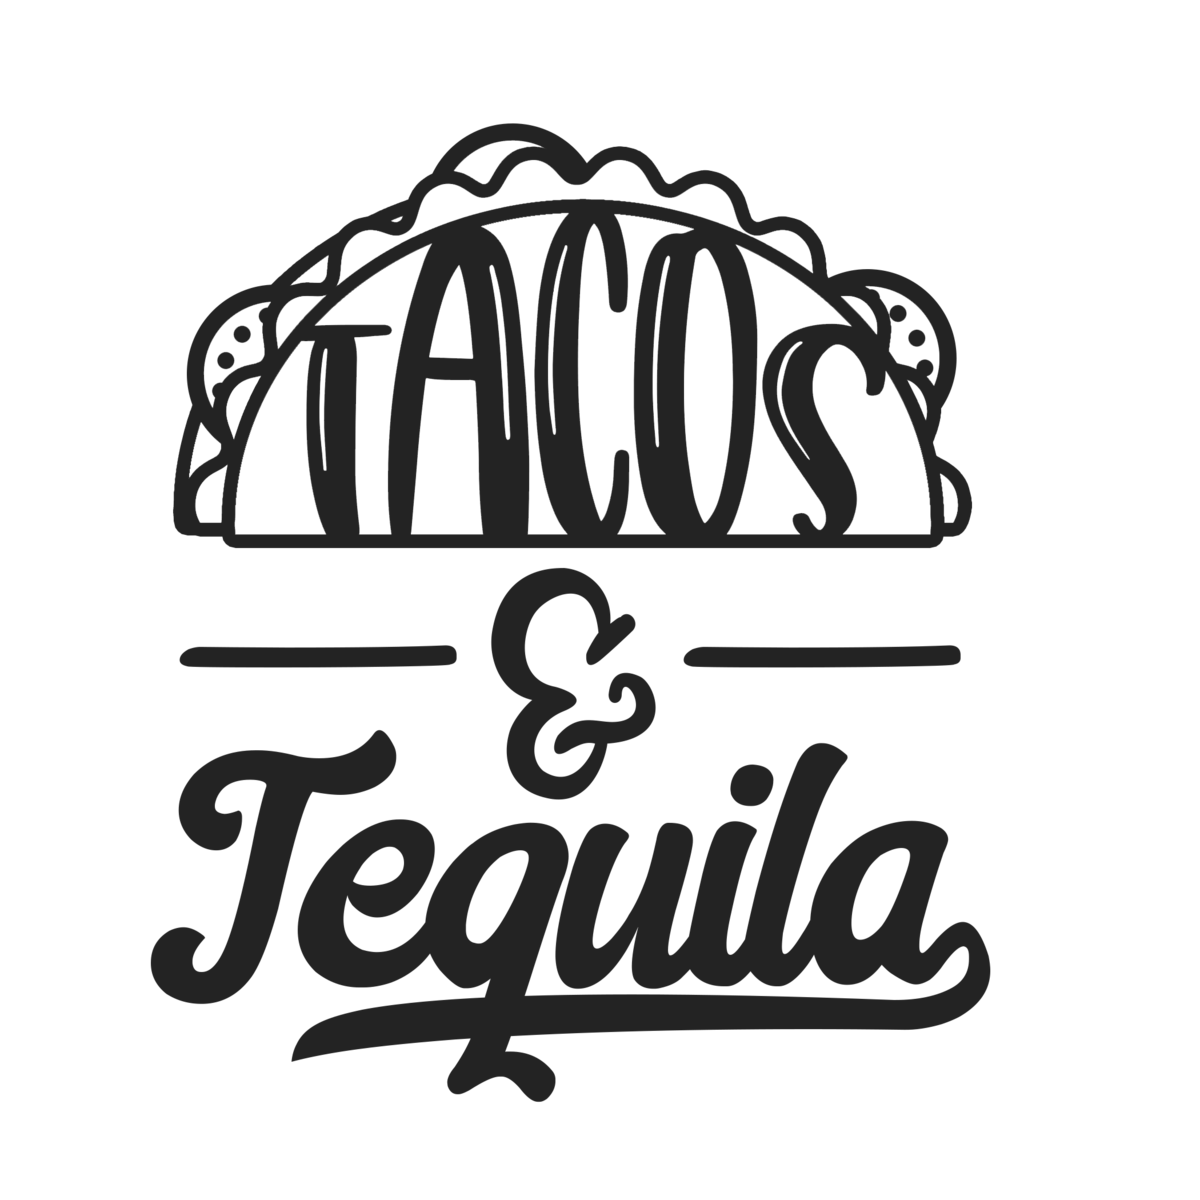 Tacos Clipart Tequila, Tacos Tequila Transparent FREE For